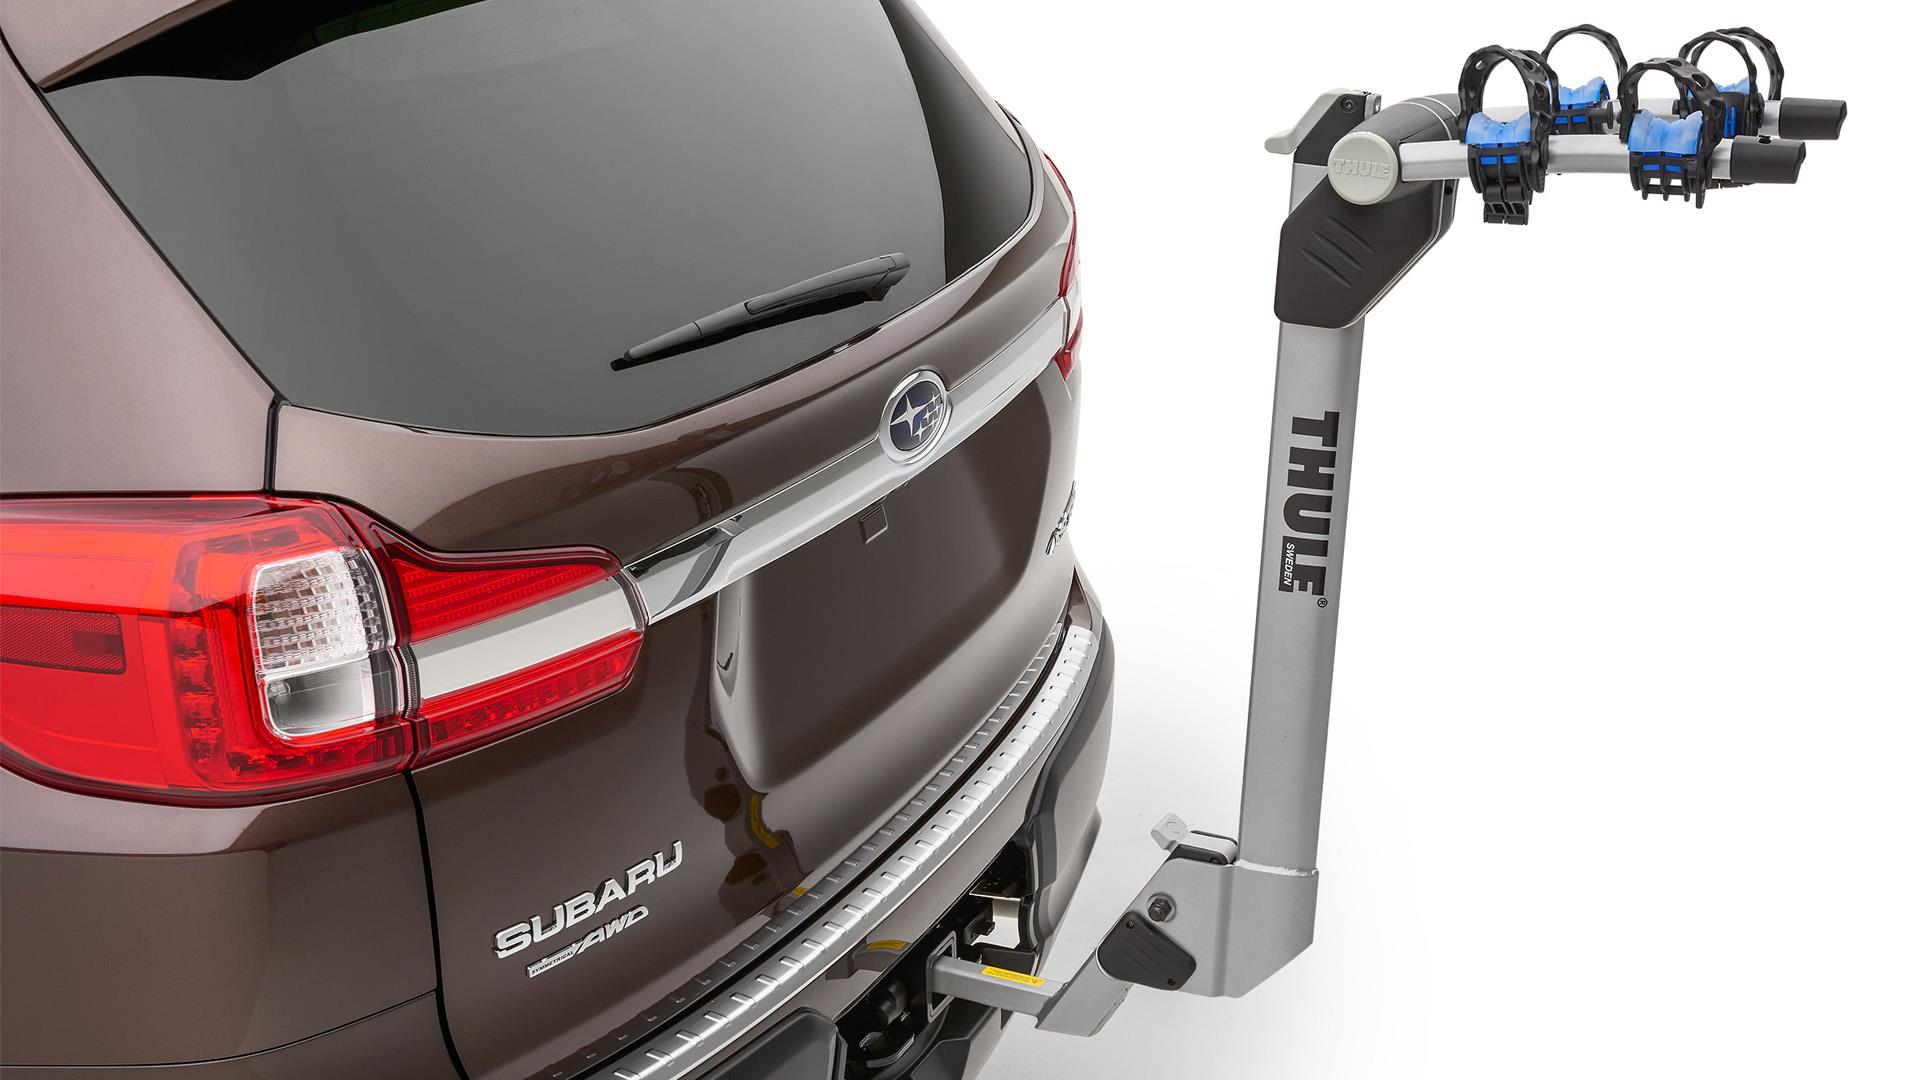 2019 Subaru Forester Thule 174 Bike Carrier Hitch Mounted